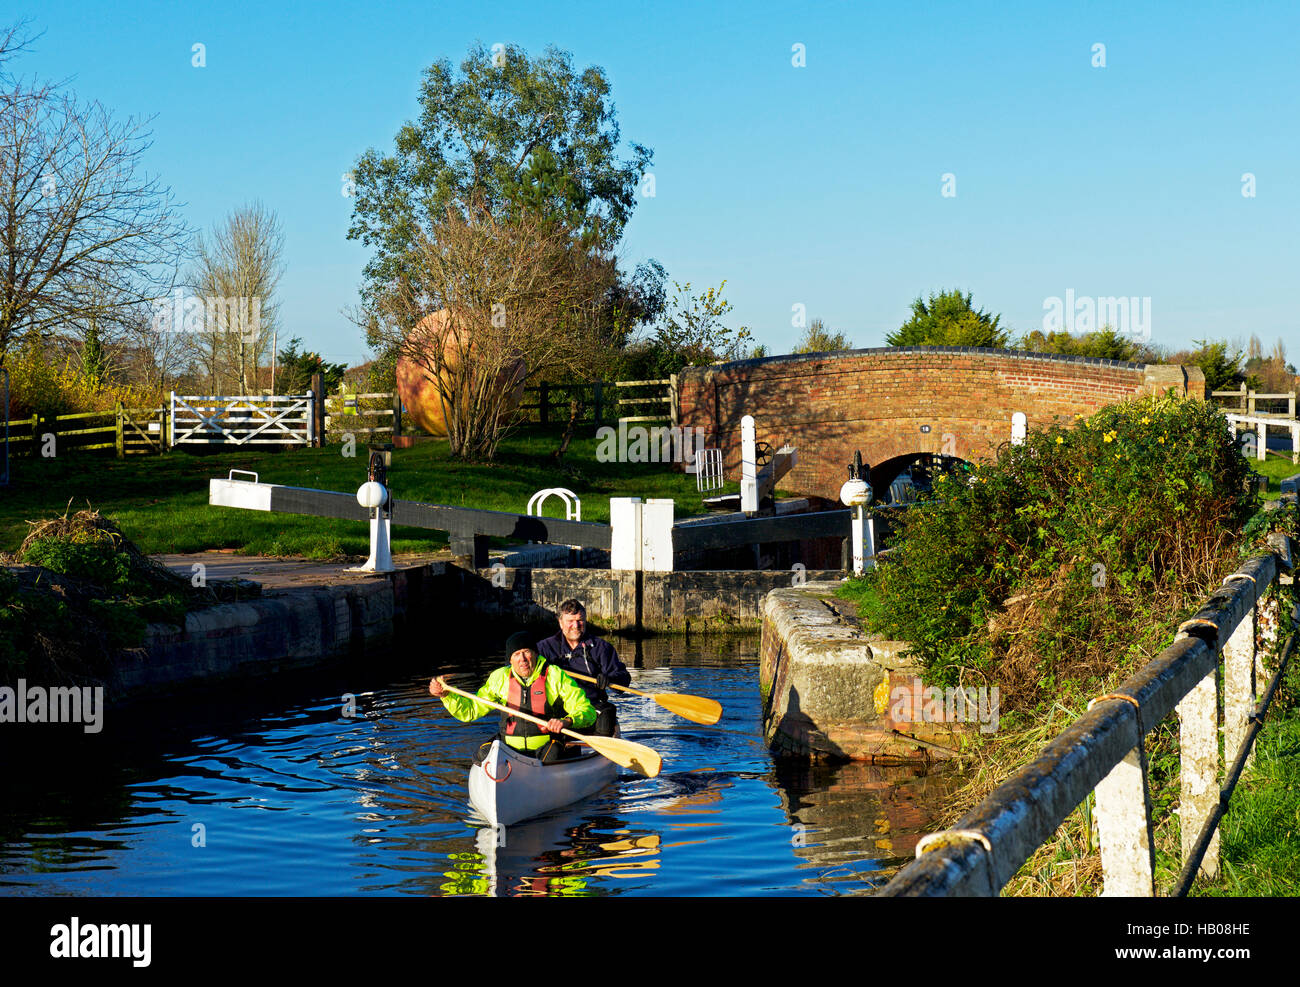 Two men in canoe, at Maunsel Lock, Bridgwater and Taunton Canal, Somerset, England UK - Stock Image